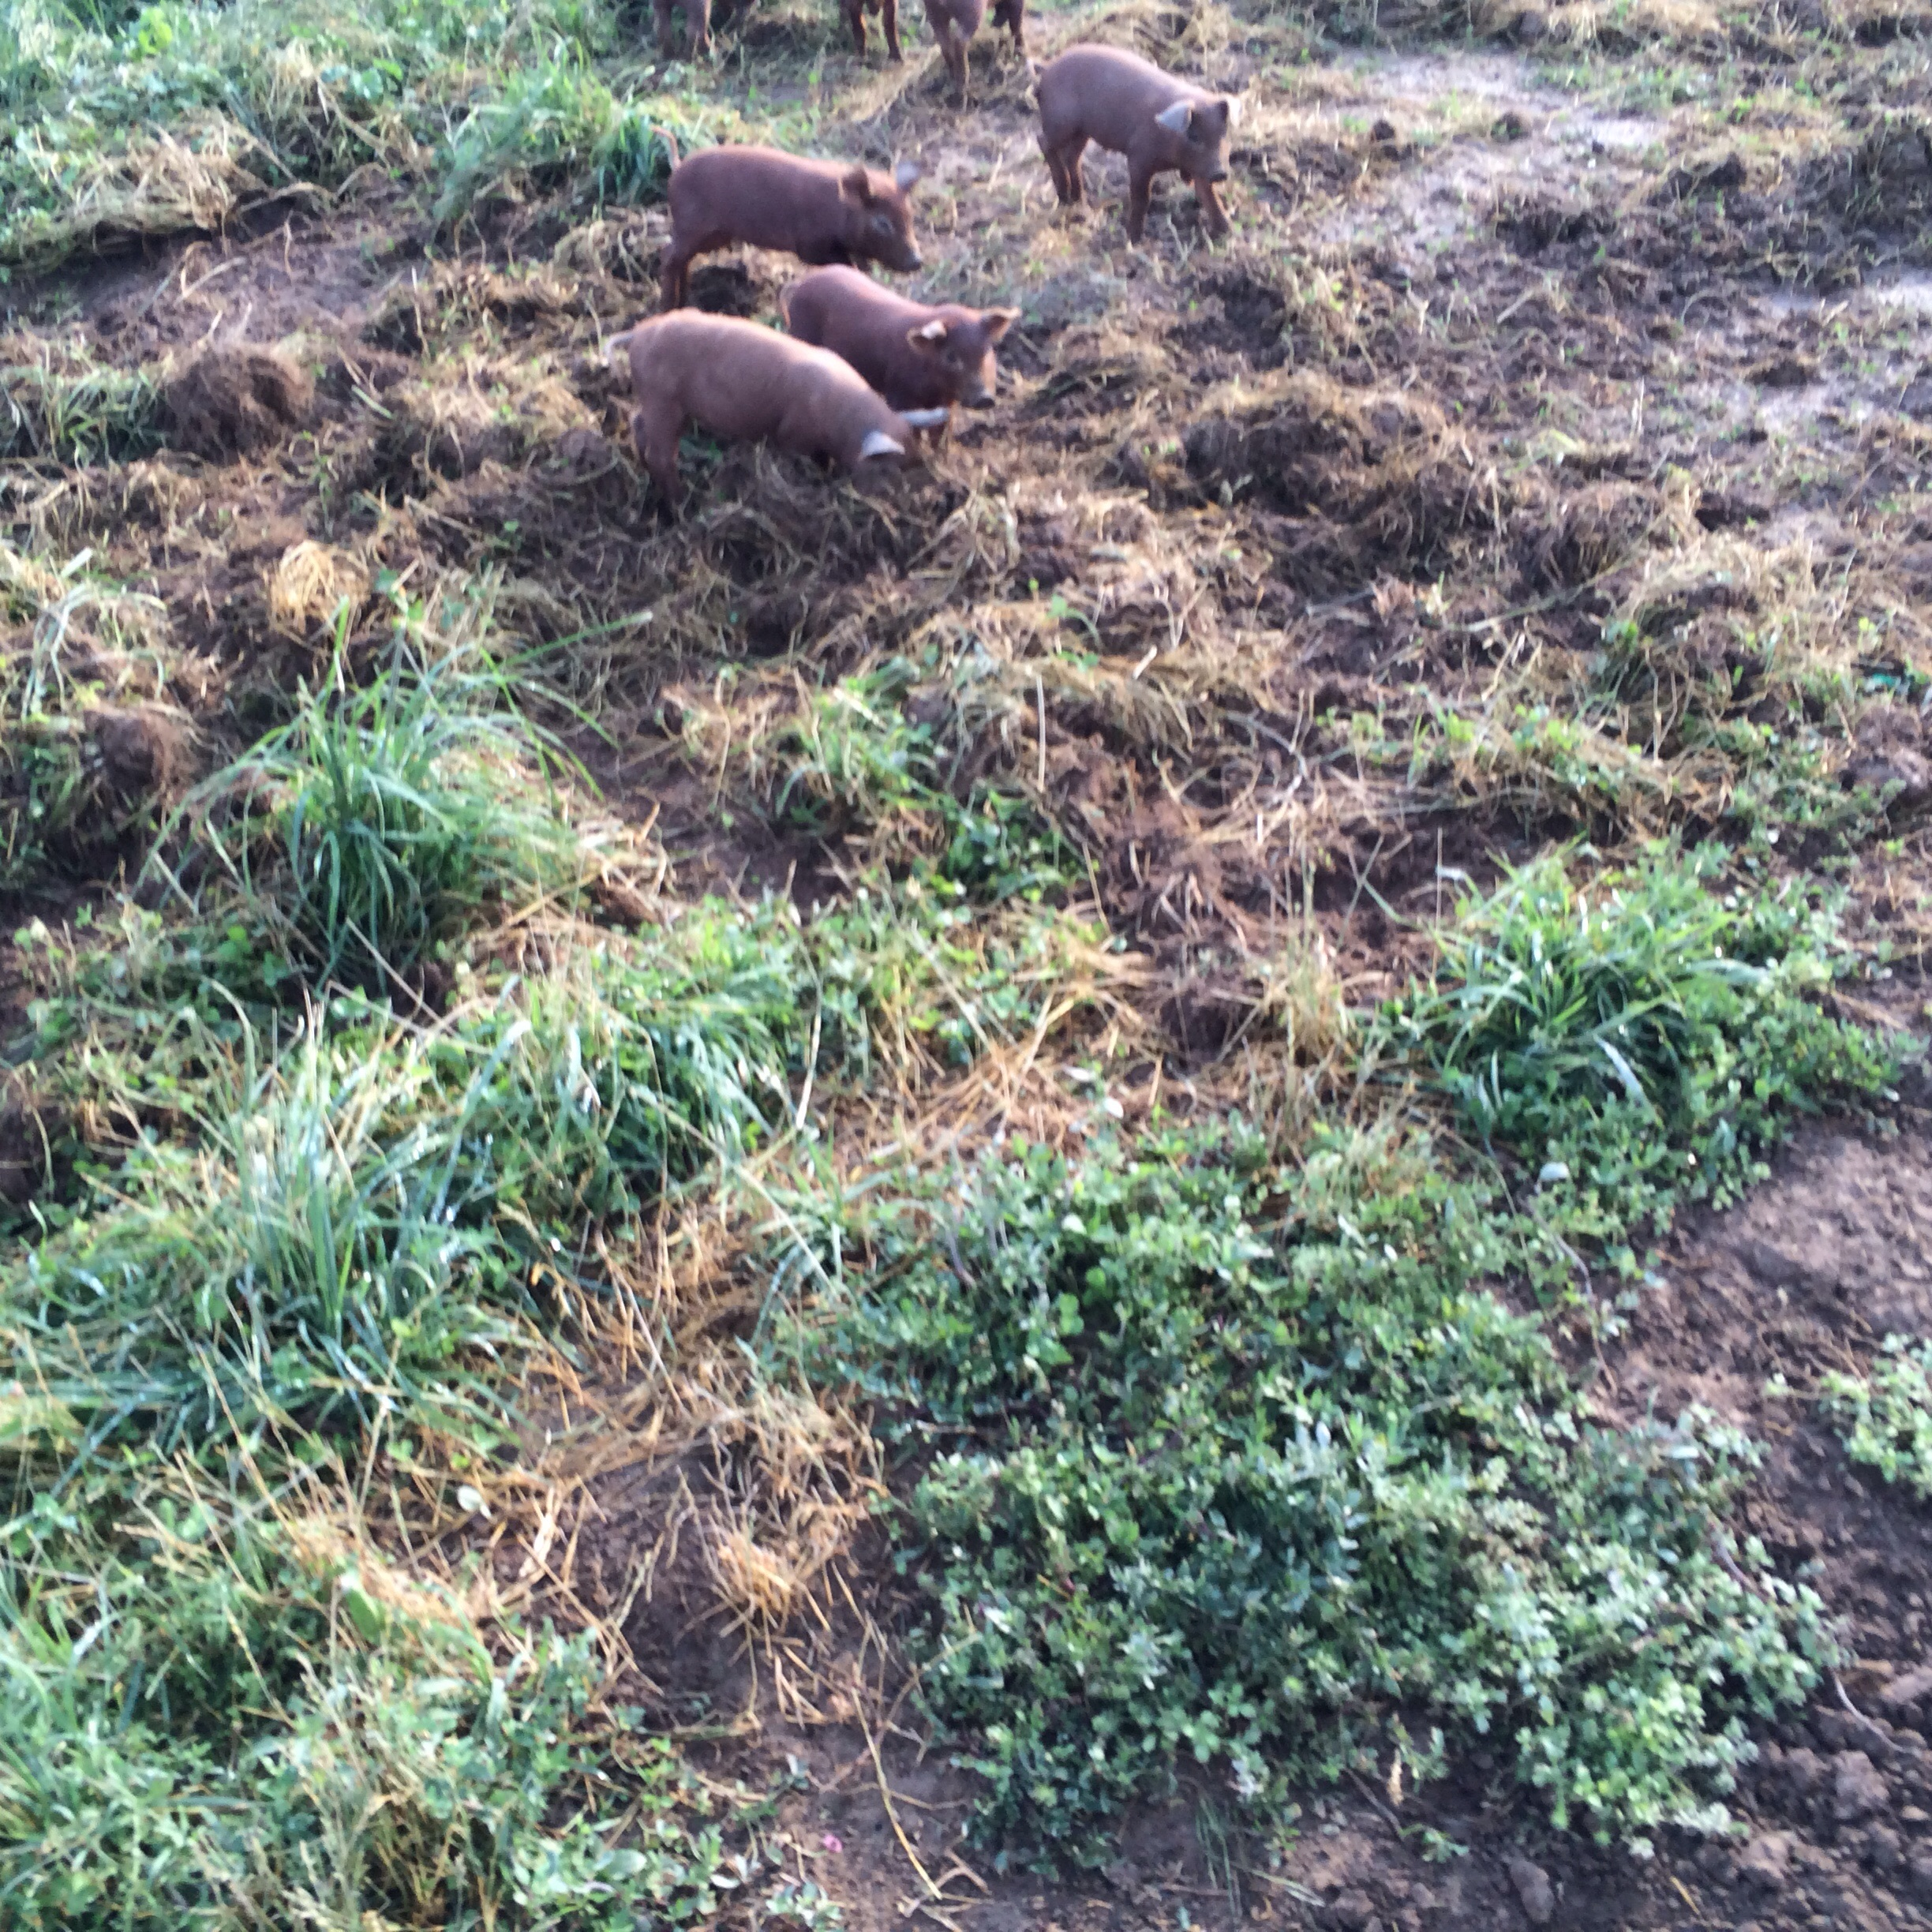 Piglets rooting around in the pastures